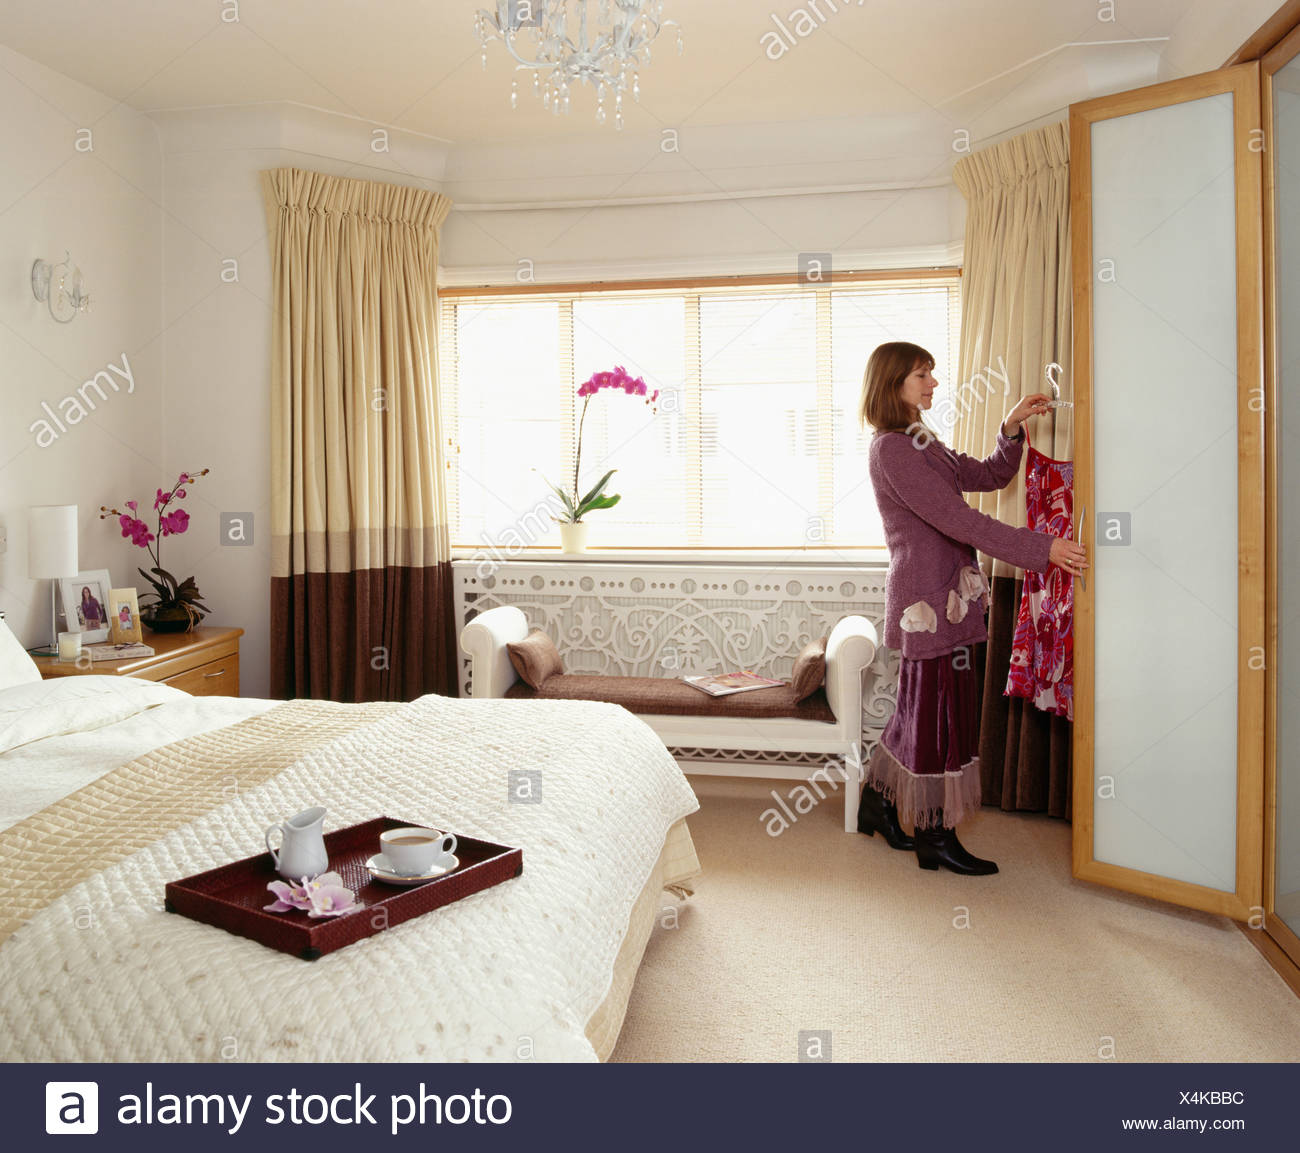 Woman Putting Clothes Into Wardrobe In Modern Cream Bedroom Stock Photo Alamy